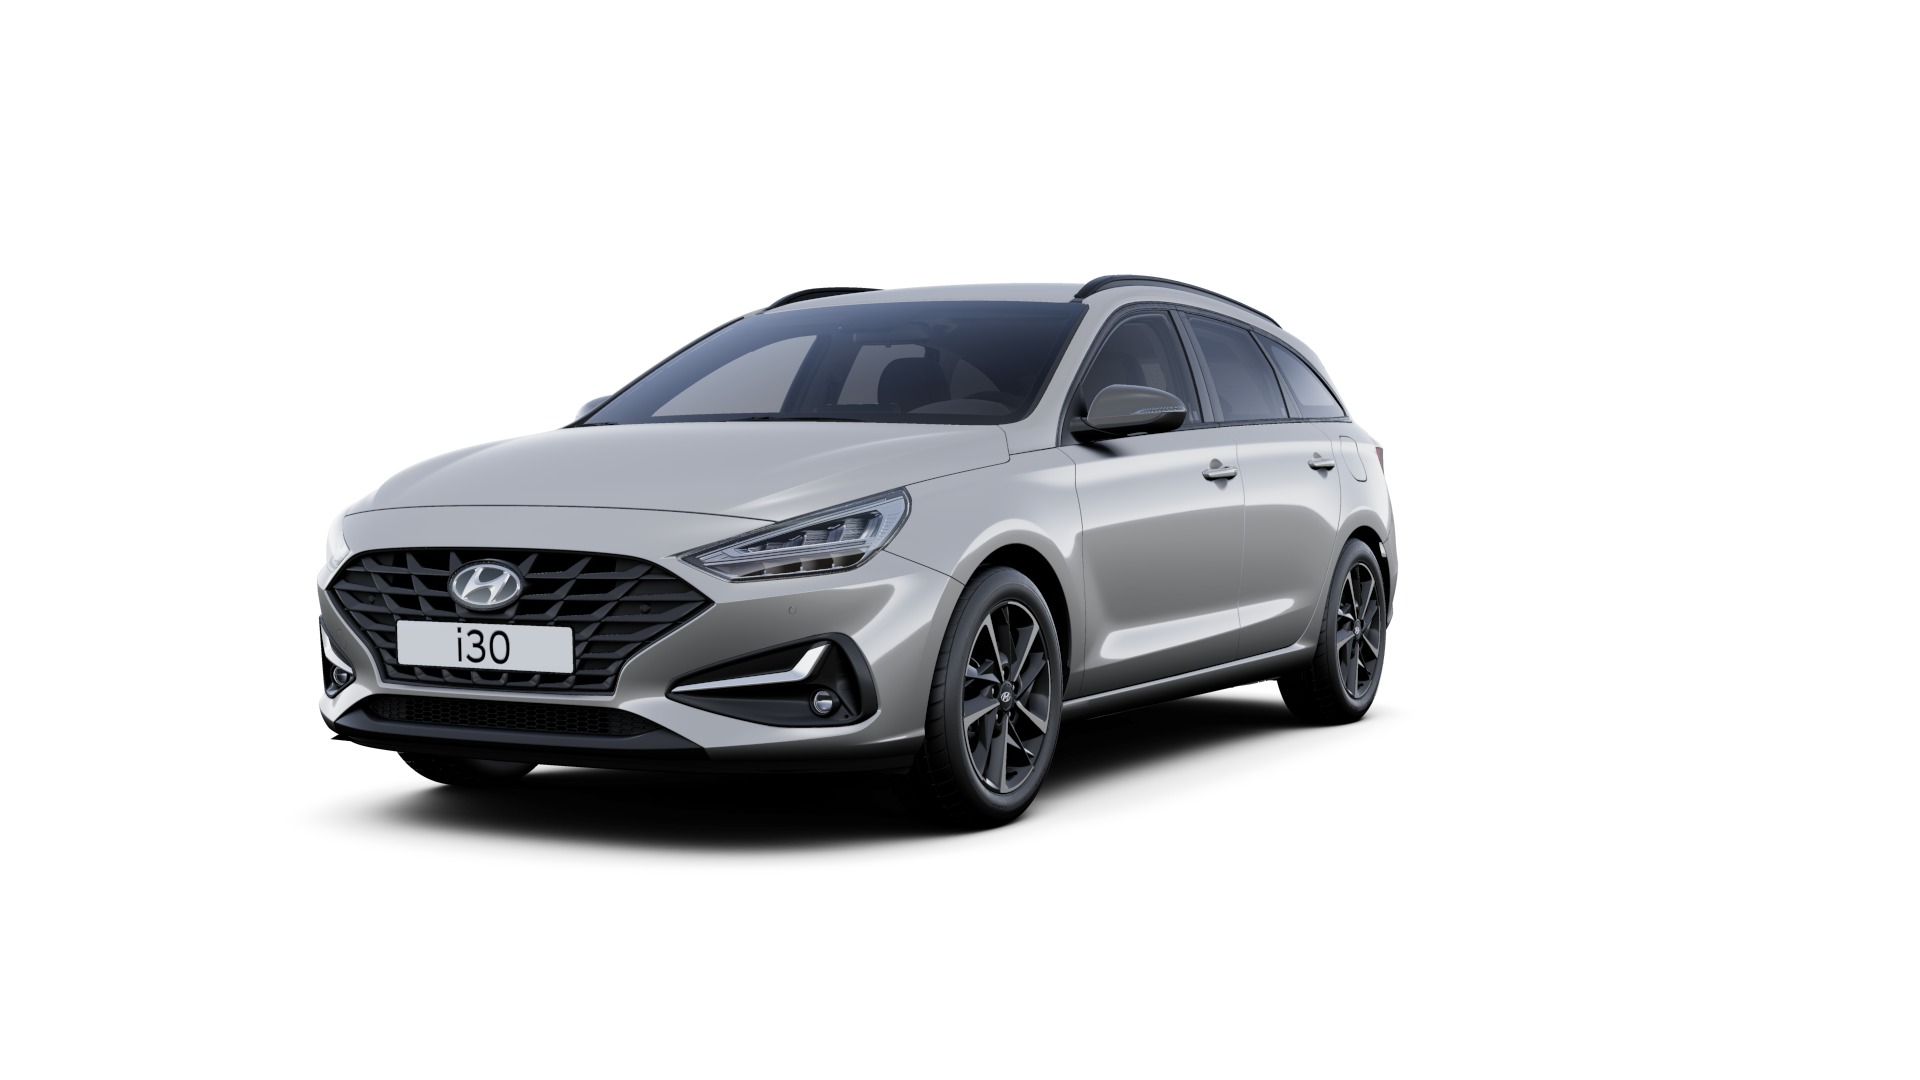 Front side view of the new Hyundai i30 Wagon in the colour Shimmering Silver.